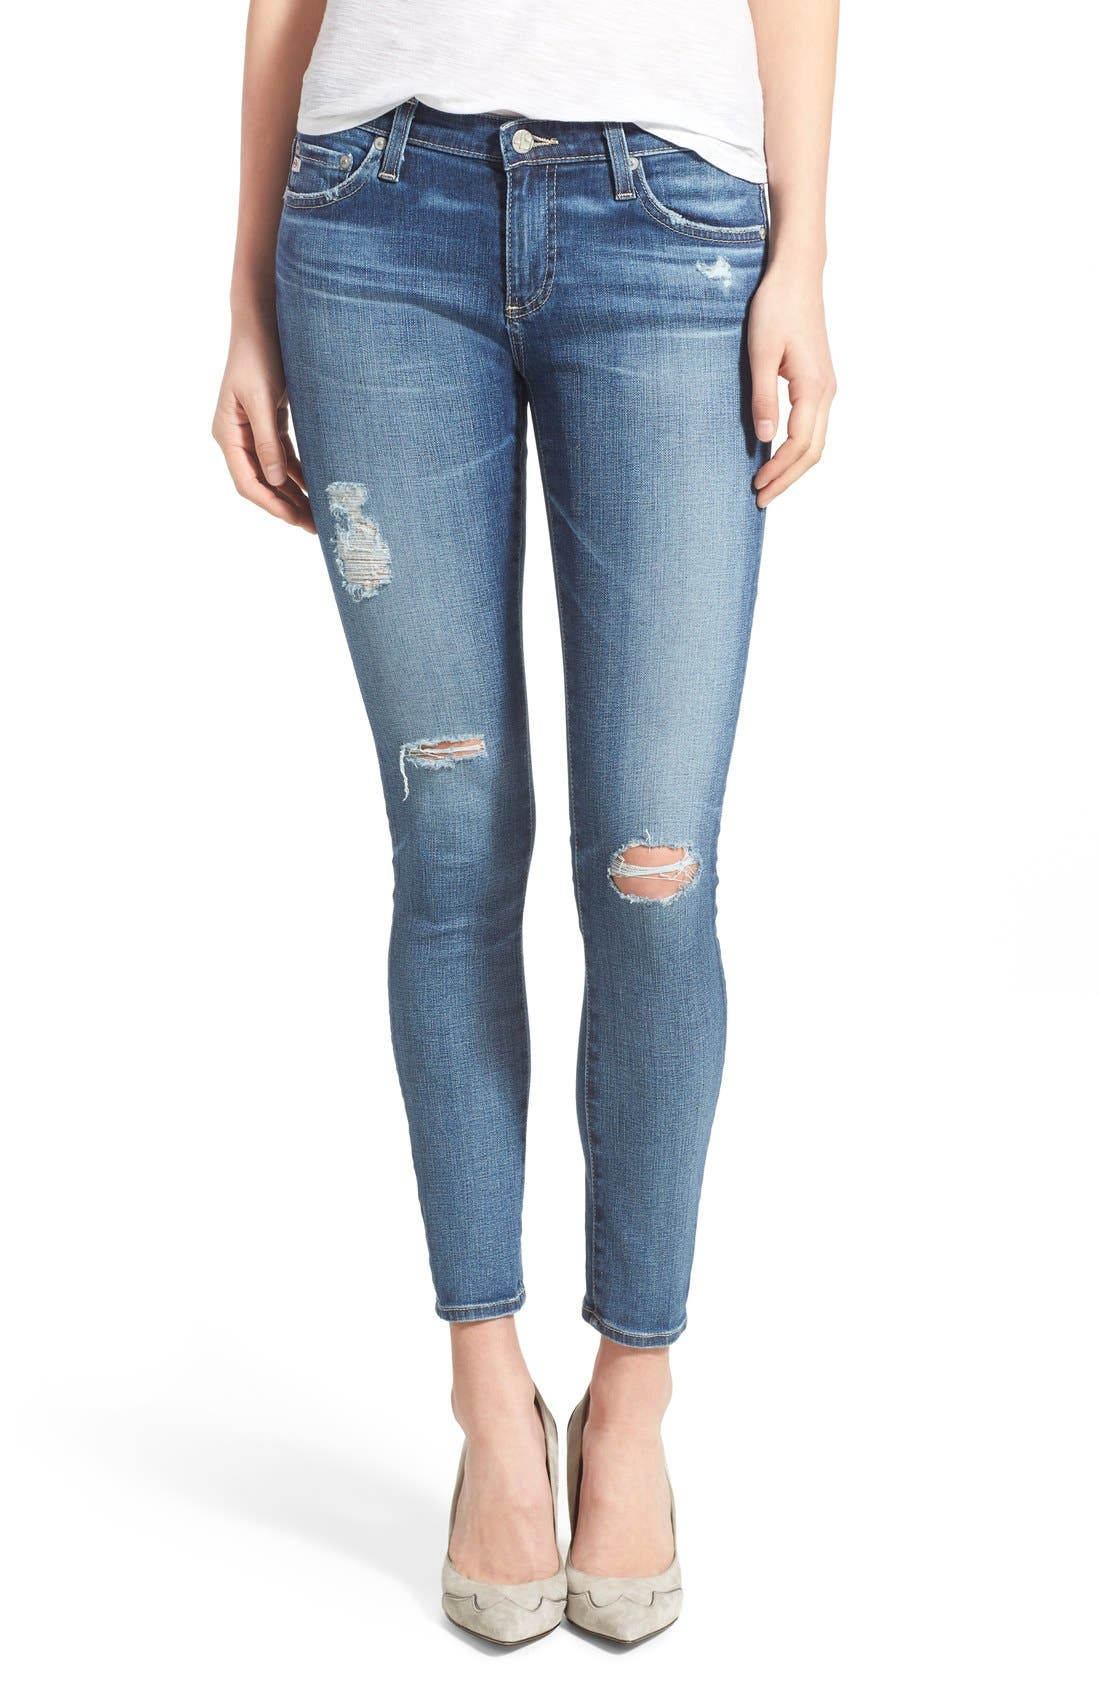 Alternate Image 1 Selected - AG 'The Legging' Ankle Jeans (11 Year Swap Meet)